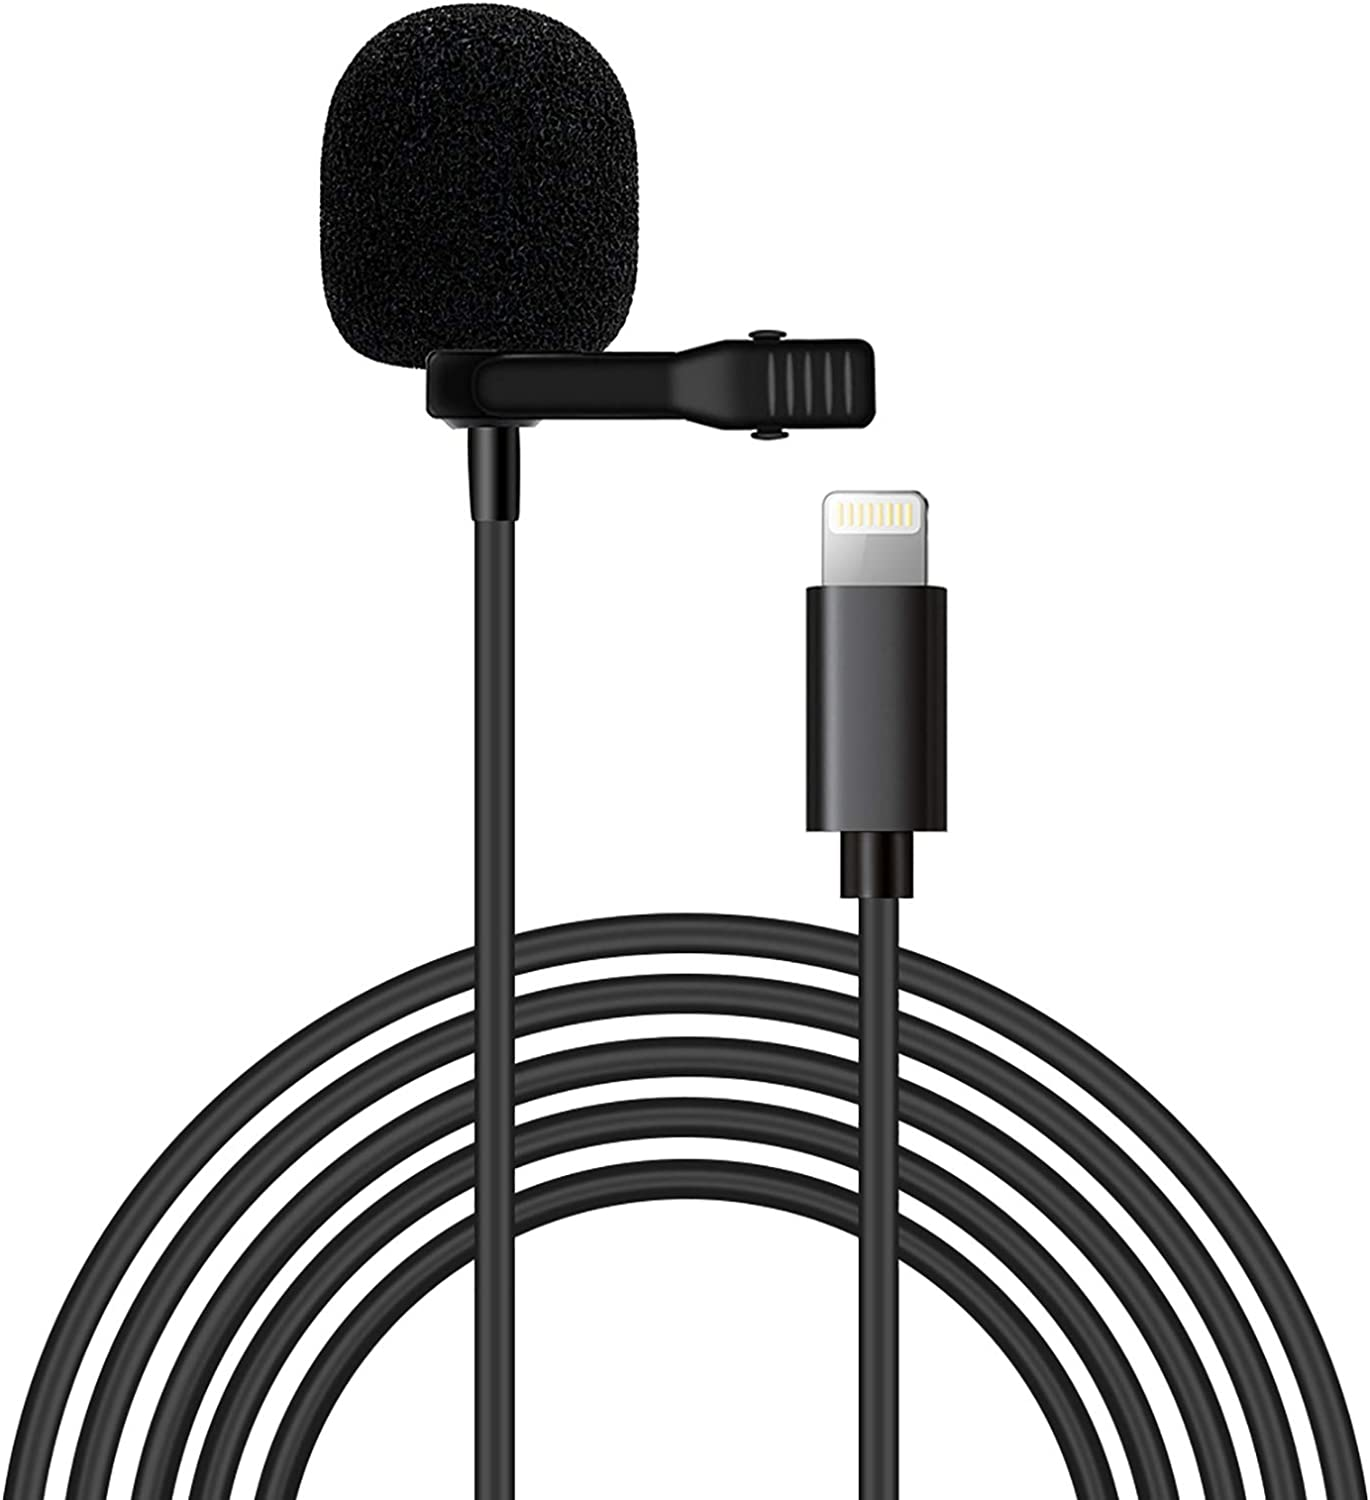 Microphone Professional for iPhone/ipad Grade Lavalier Lapel Omnidirectional Phone Audio Video Recording Lavalier Condenser Microphone (iOS 3m)